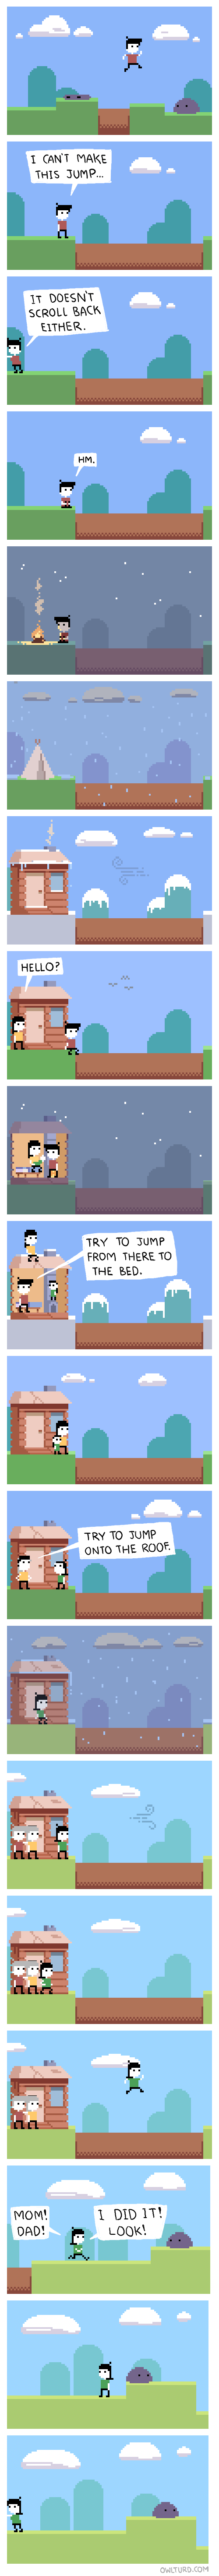 gaming video games scrolling Sad platformers web comics